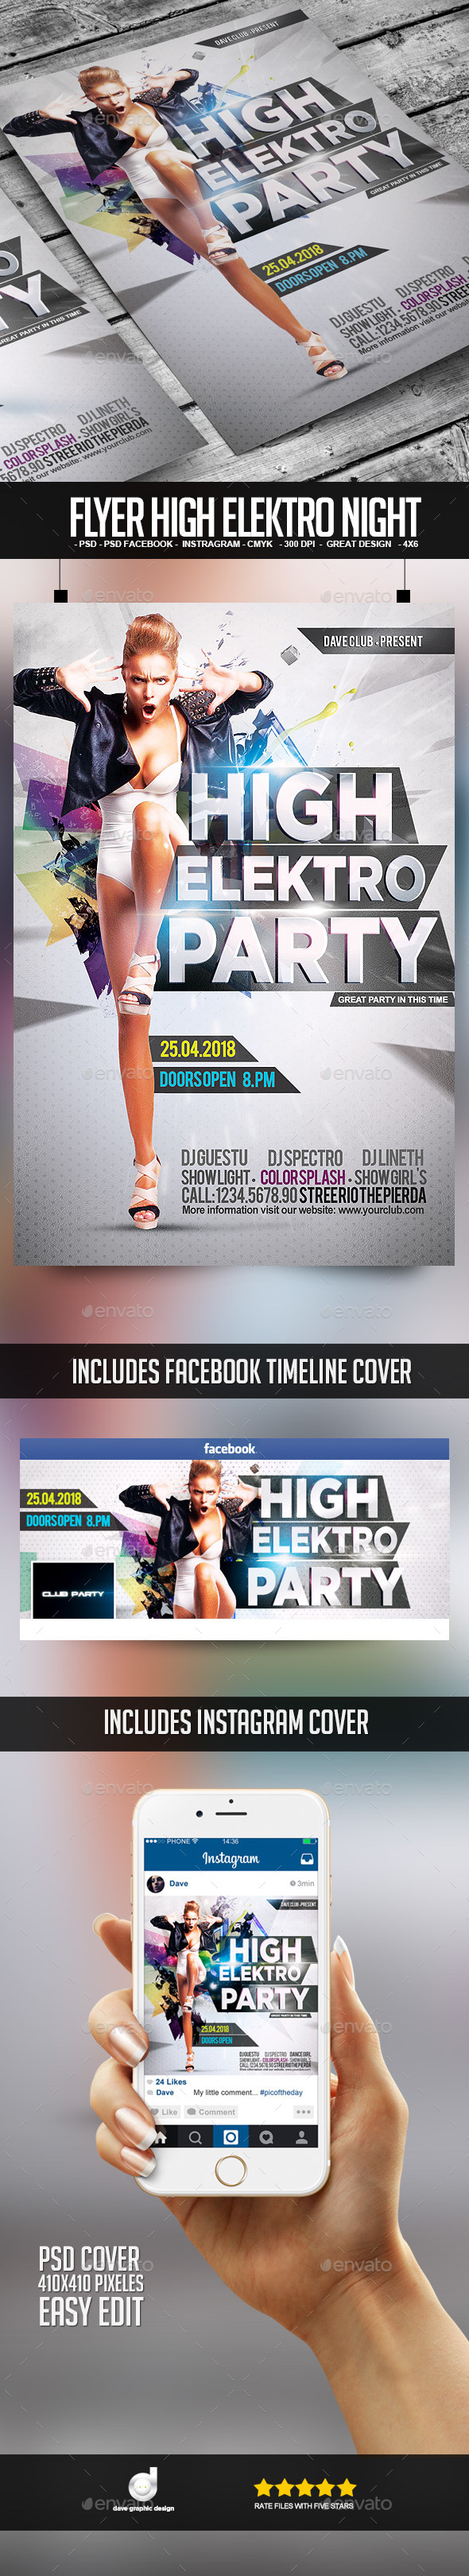 Flyer High Elektro Party - Clubs & Parties Events